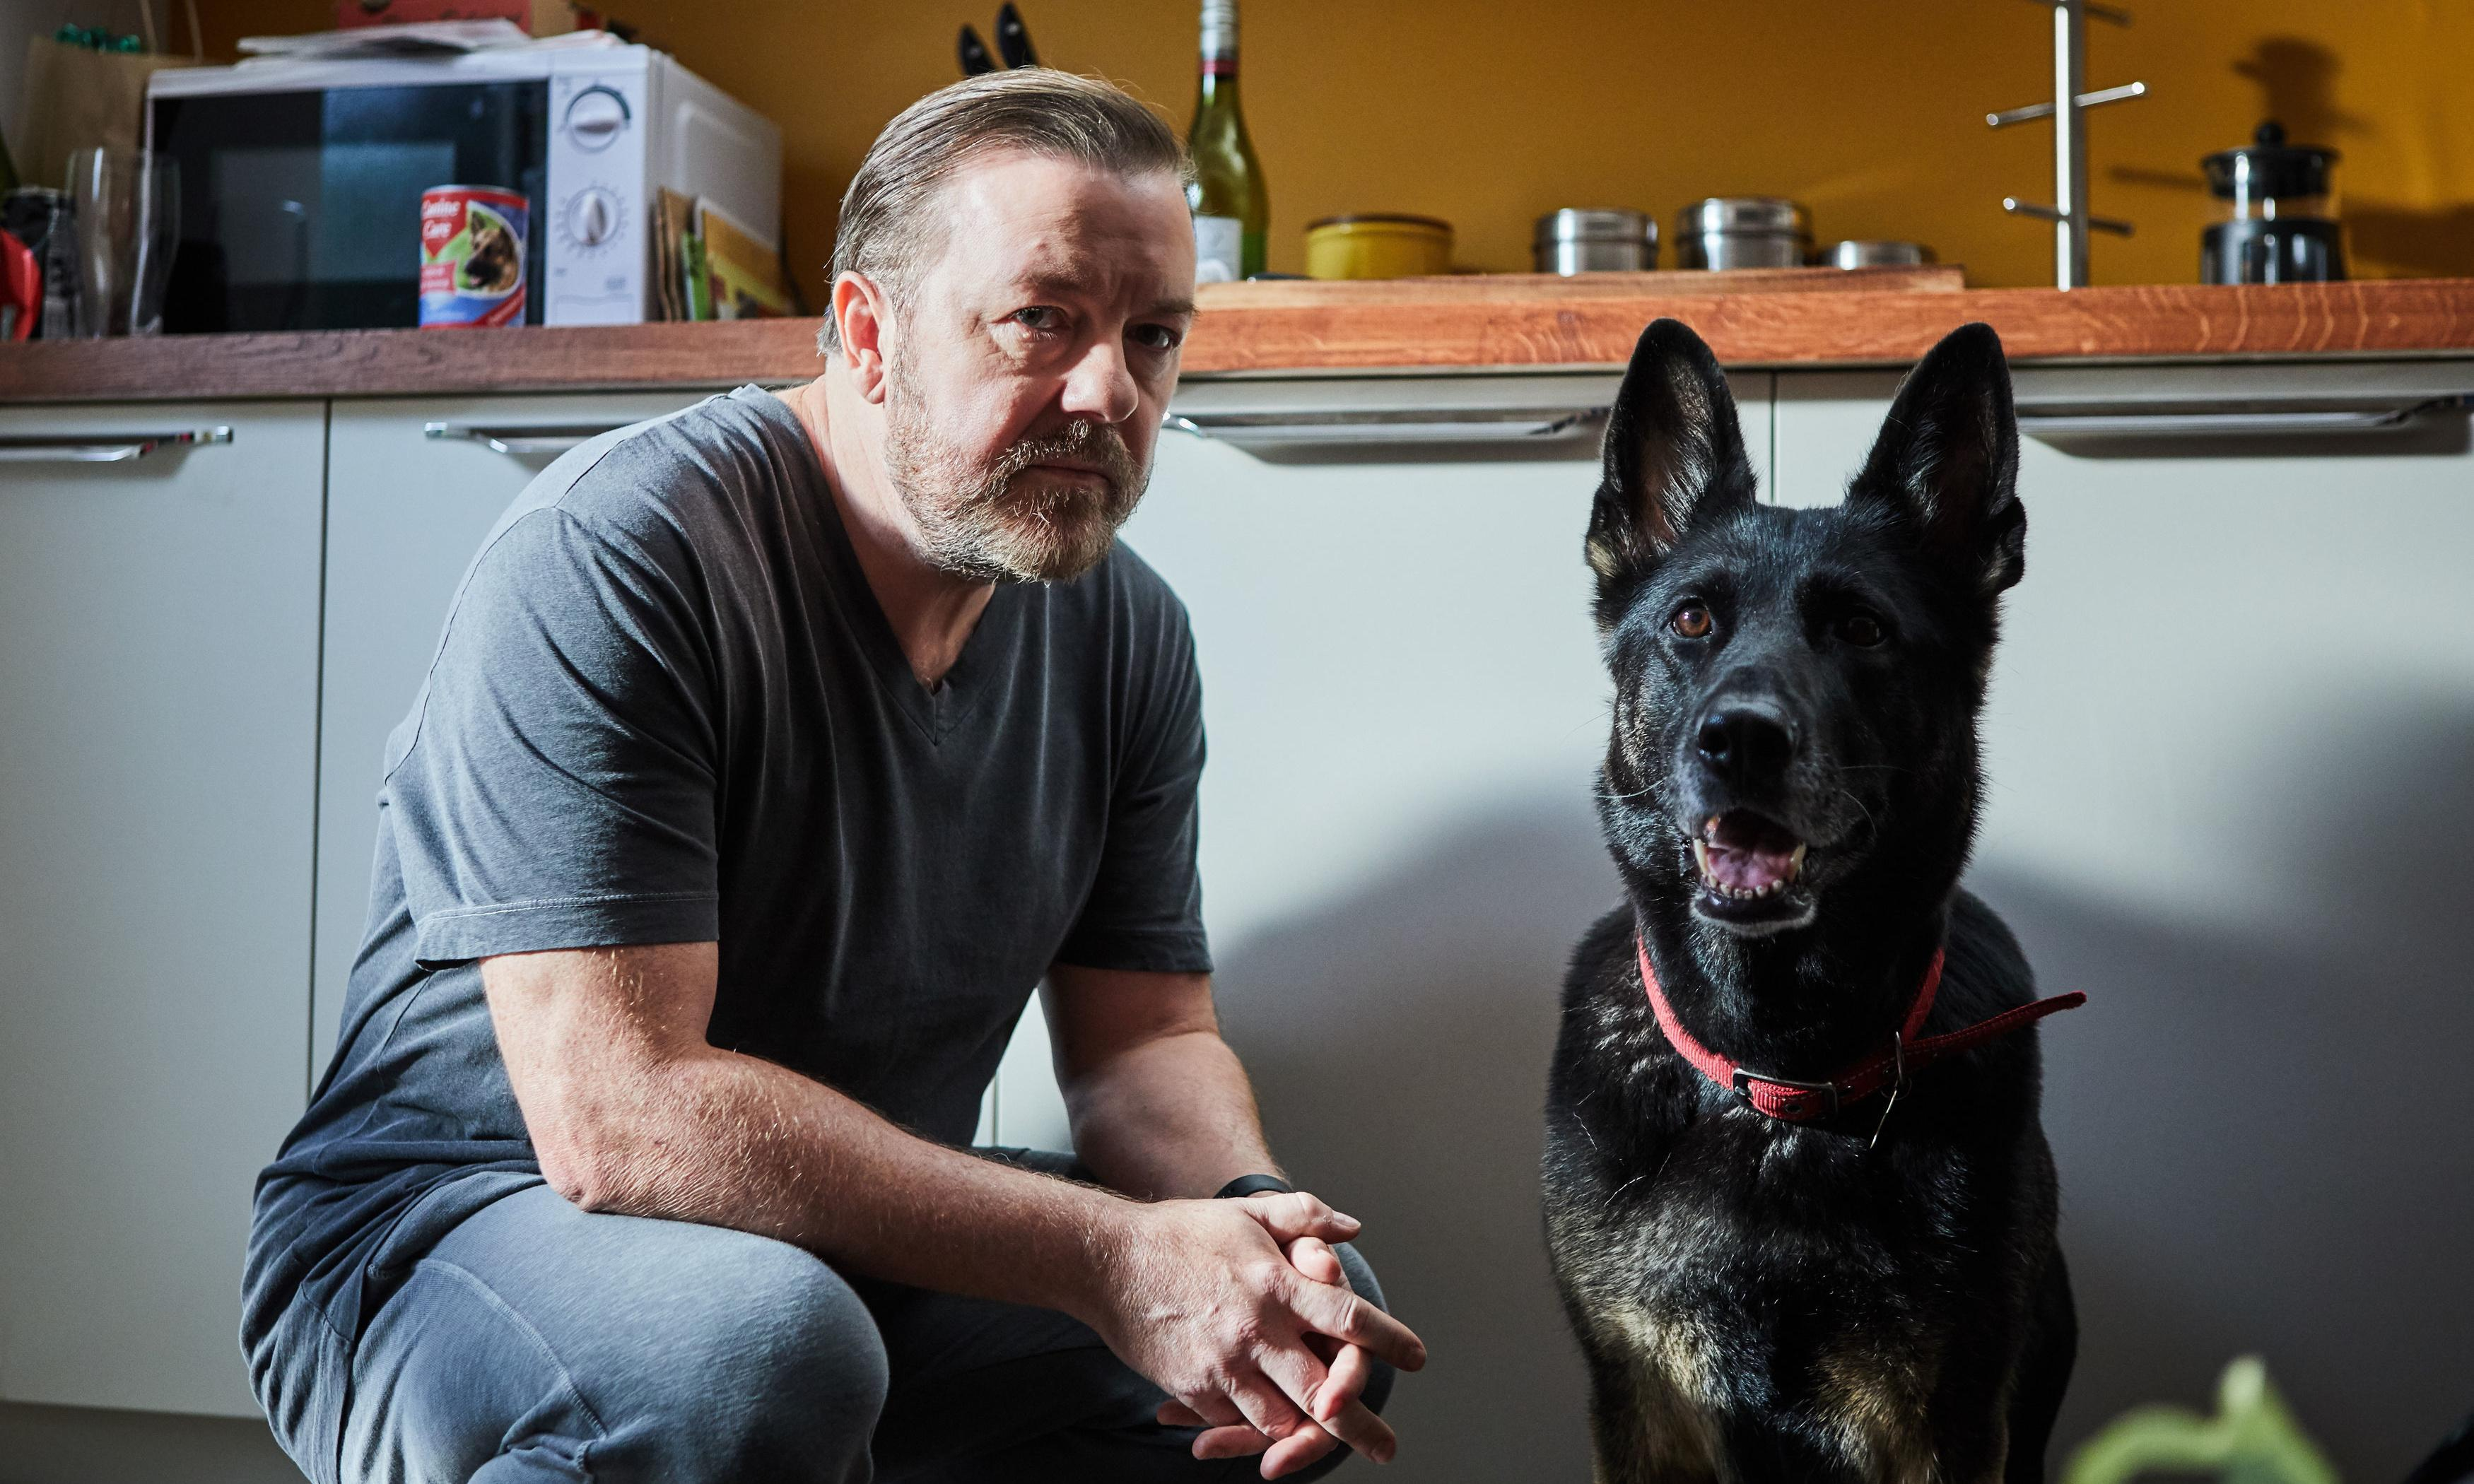 Ricky Gervais offers proof, if needed, that there is life after The Office